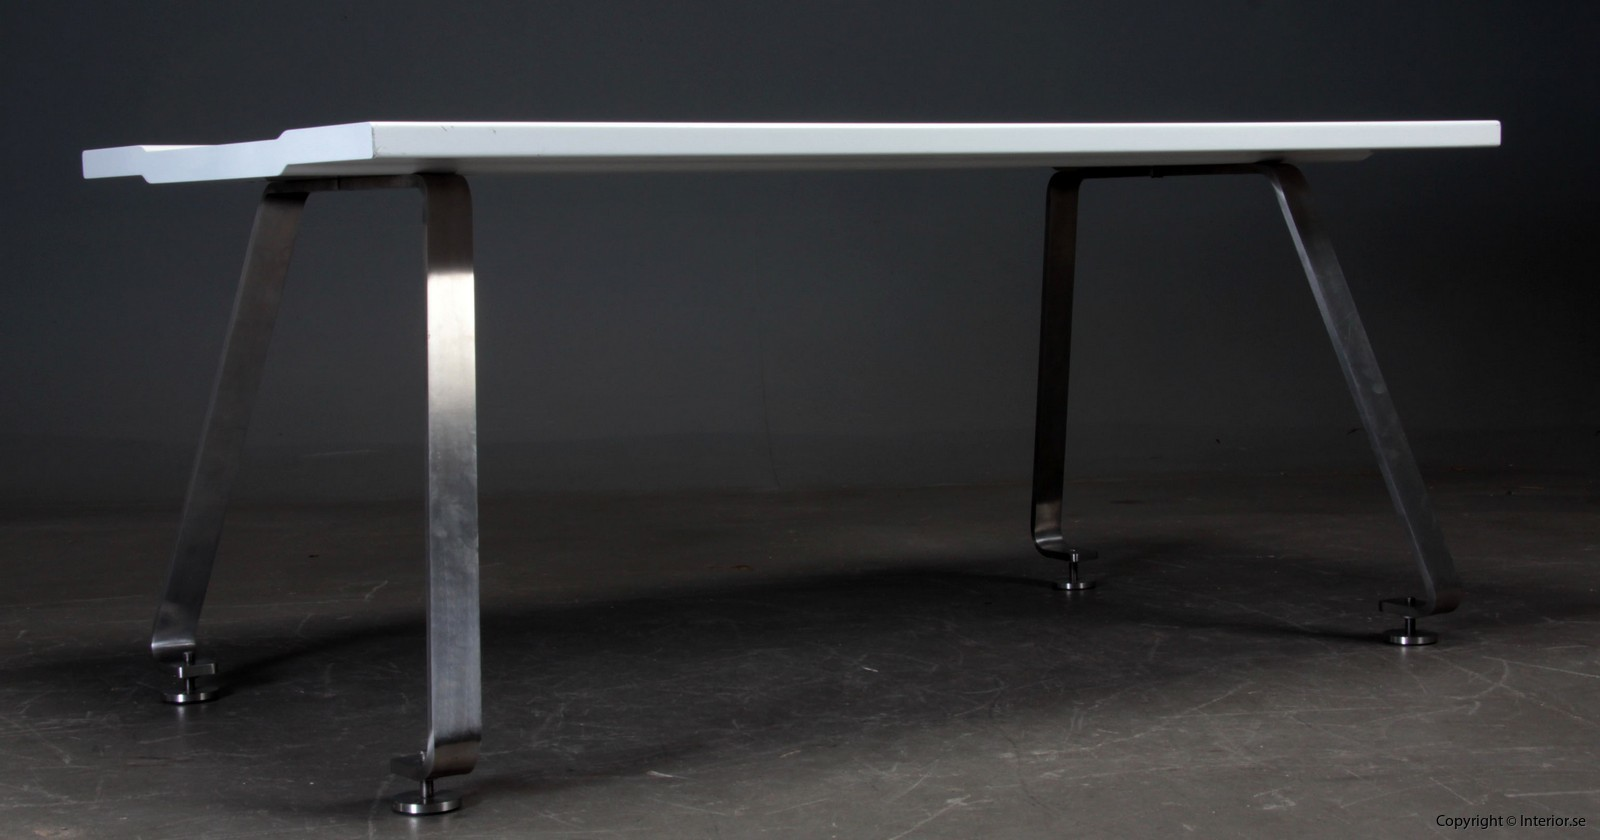 Unikt konferensbord conference table, Design Johannes Torpe danish design - 180 x 100 cm 2